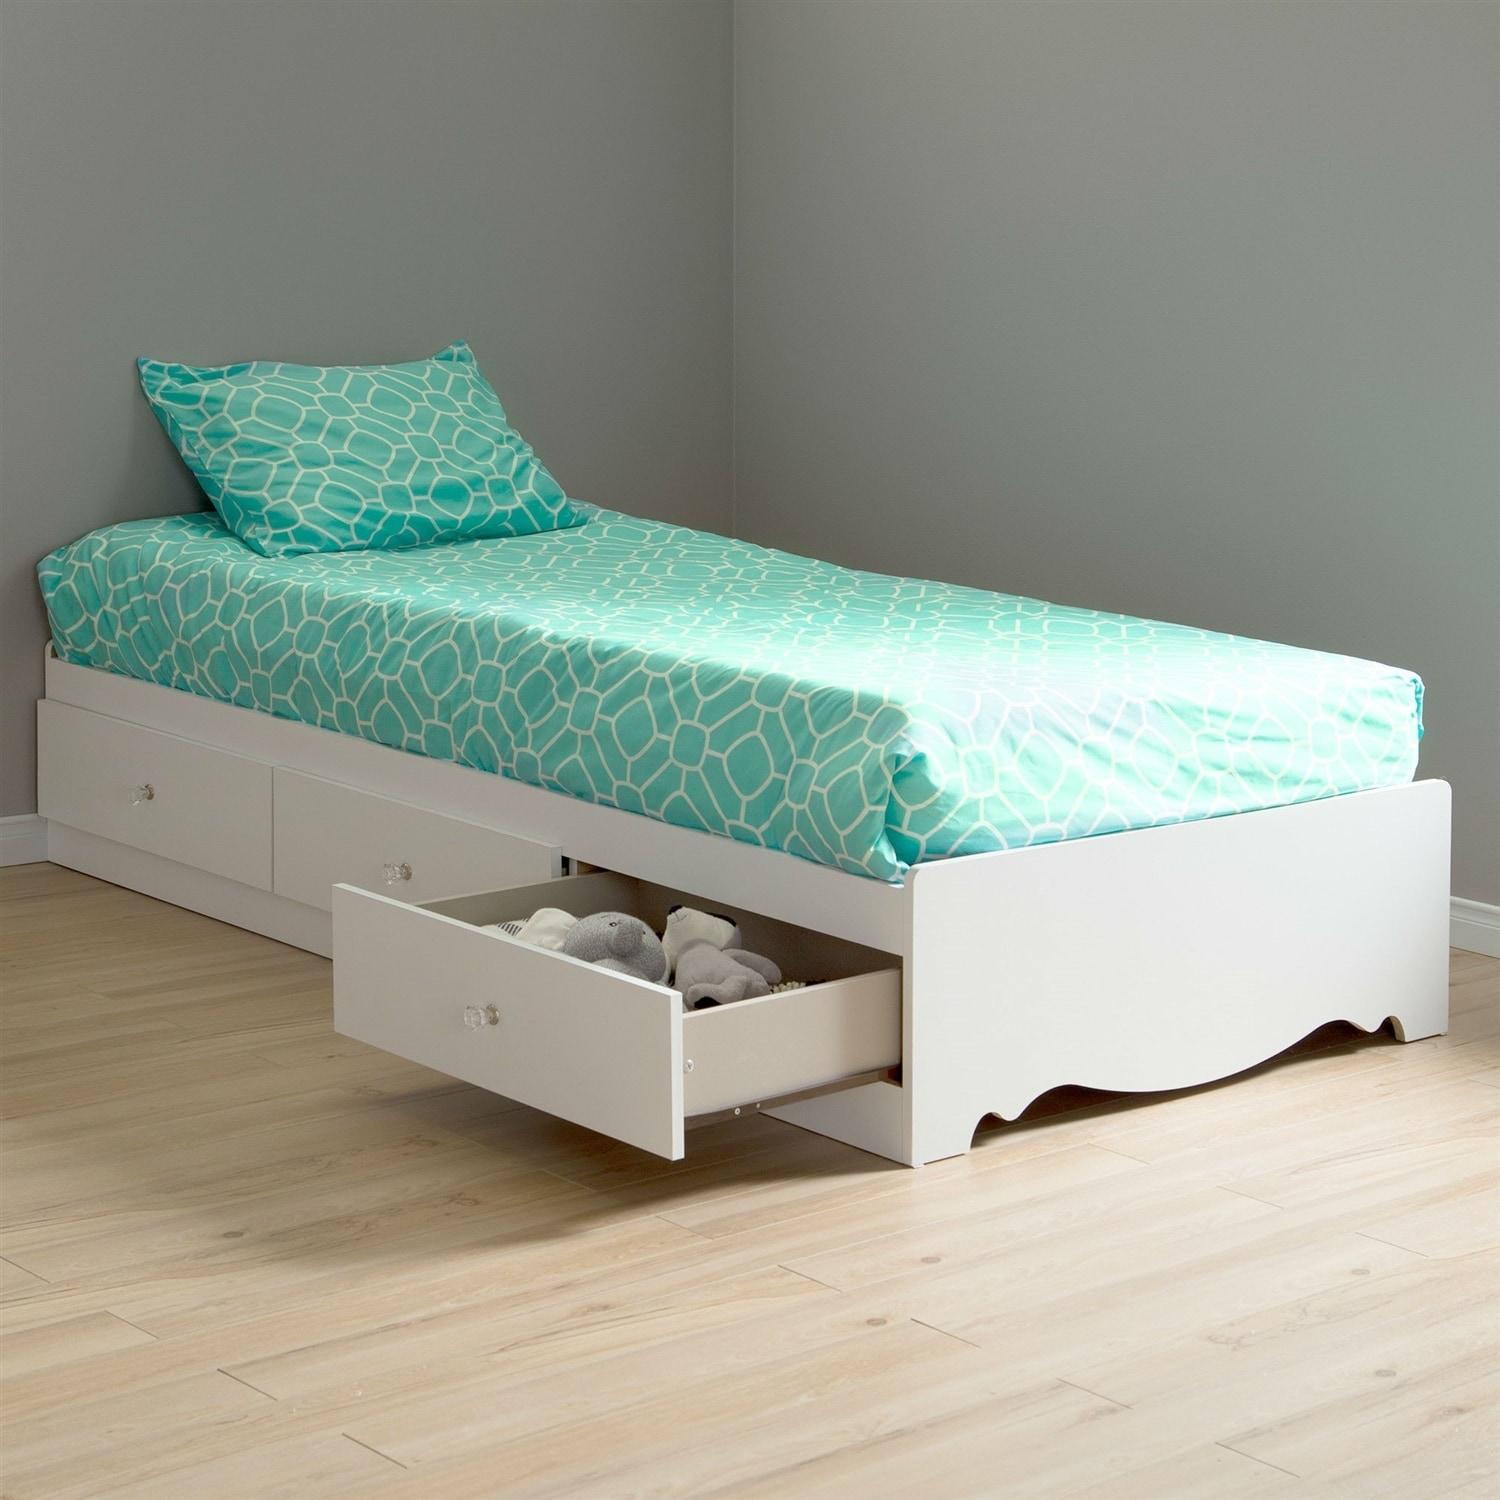 Picture of: Twin Size White Wood Platform Day Bed With Storage Drawers Overstock 29083975